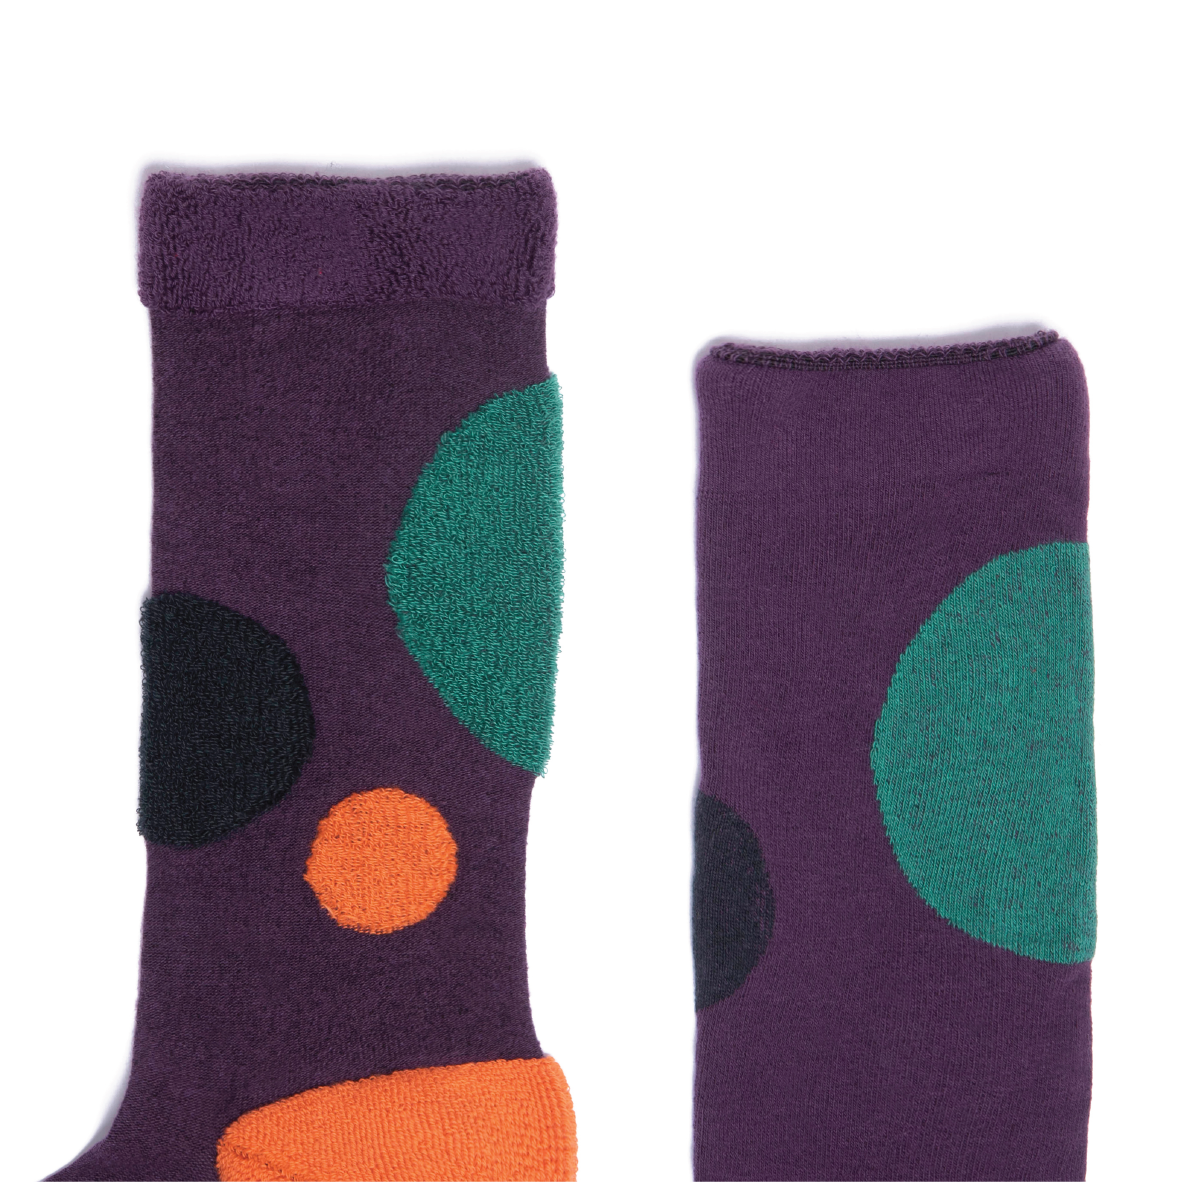 My Inner Beauty - Hati Purple Socks